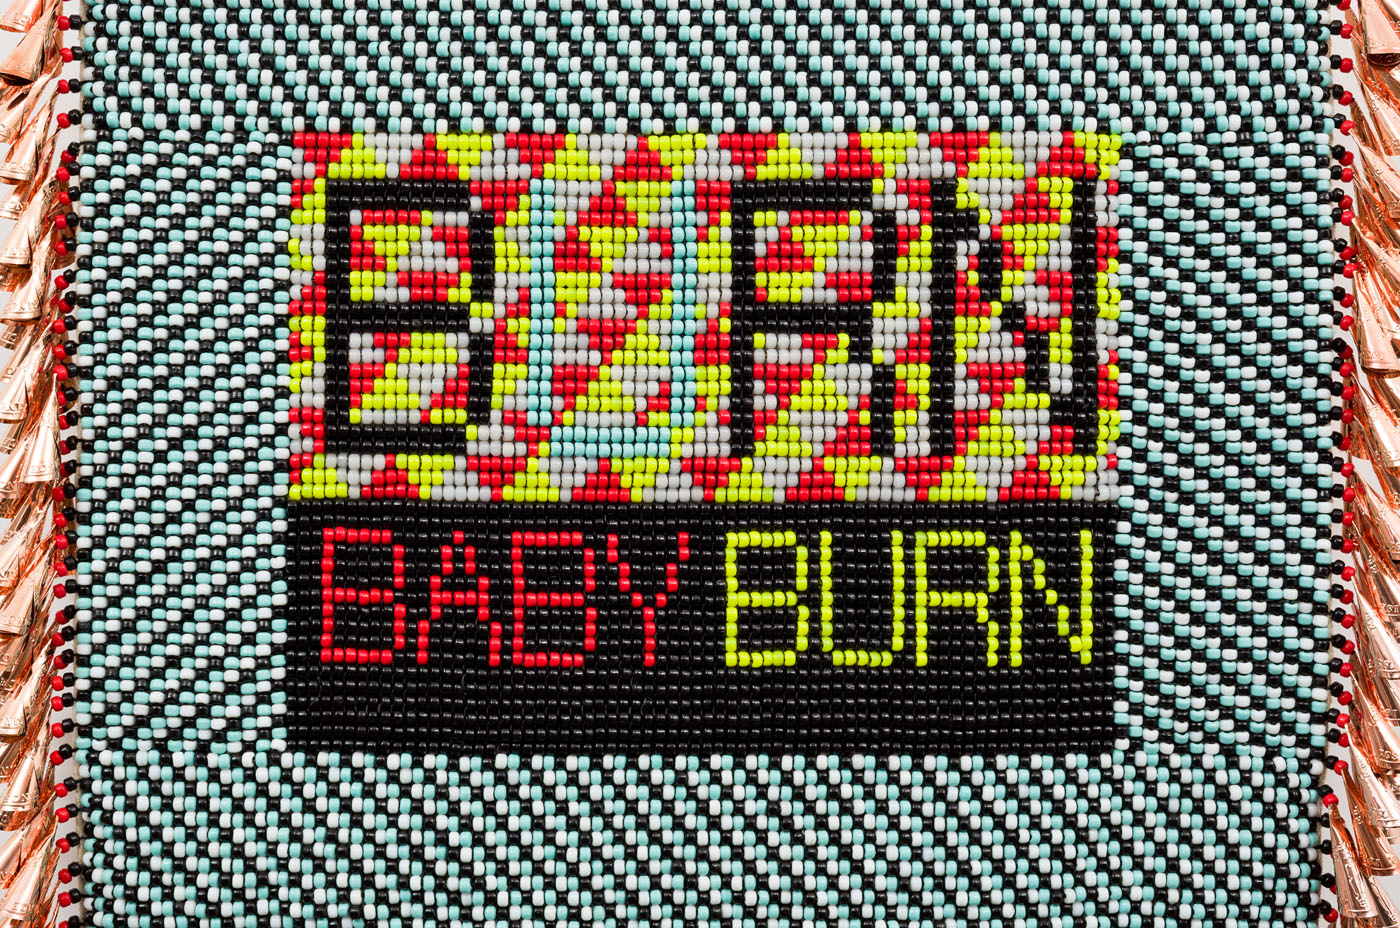 BURN BABY BURN repurposed wool army blanket, canvas, glass beads, plastic beads, copper jingles, nylon fringe, artificial sinew